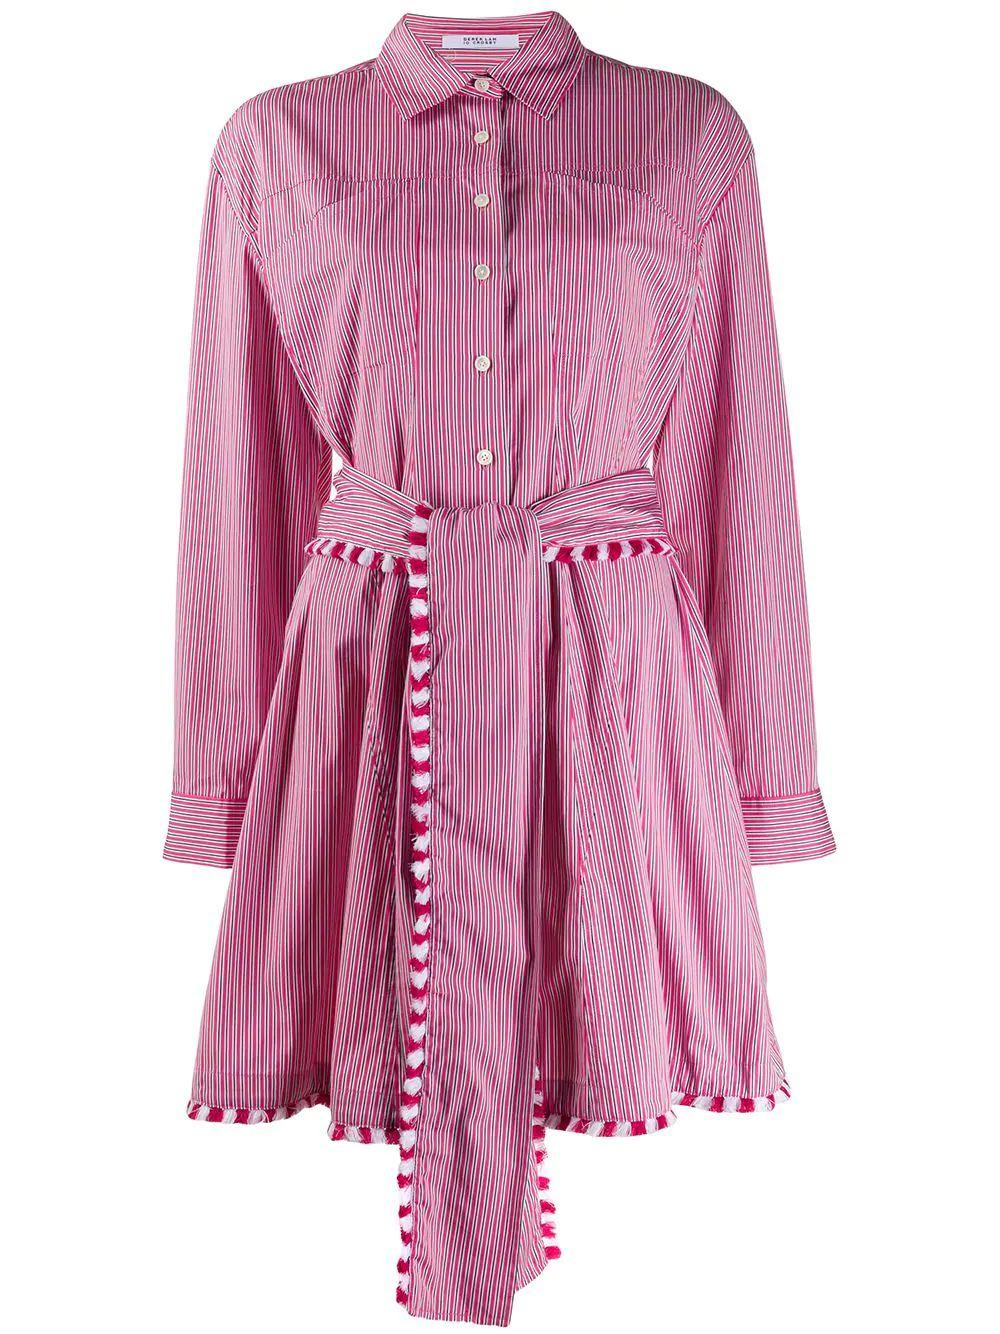 Iona Belted Shirt Dress